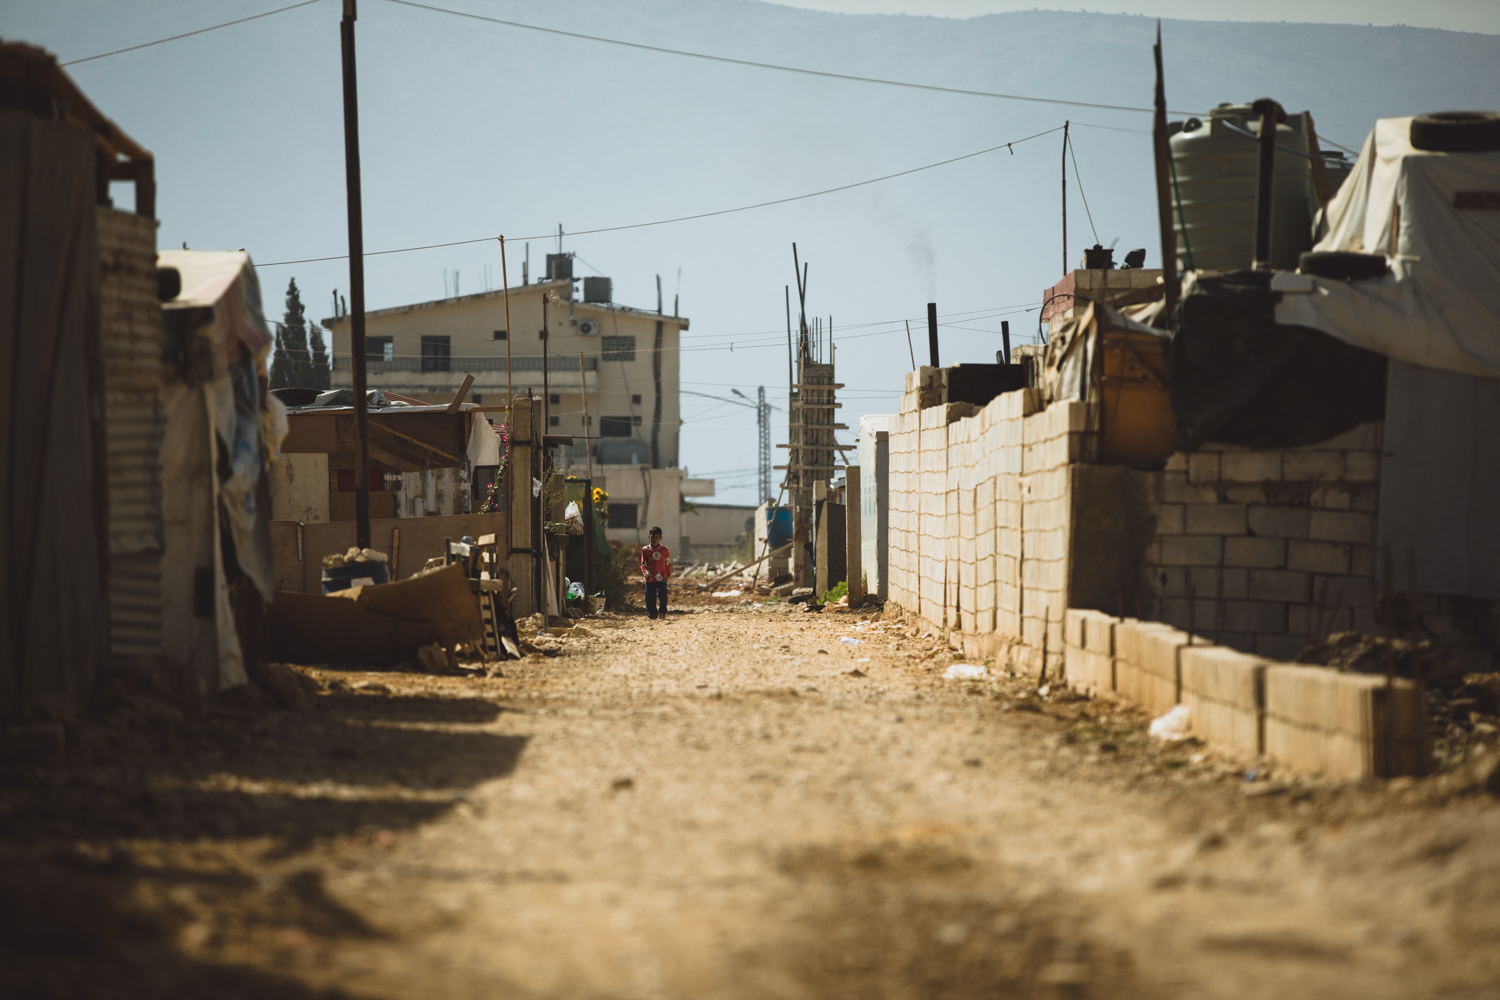 Unnamed refugee camp, Bekaa Valley.